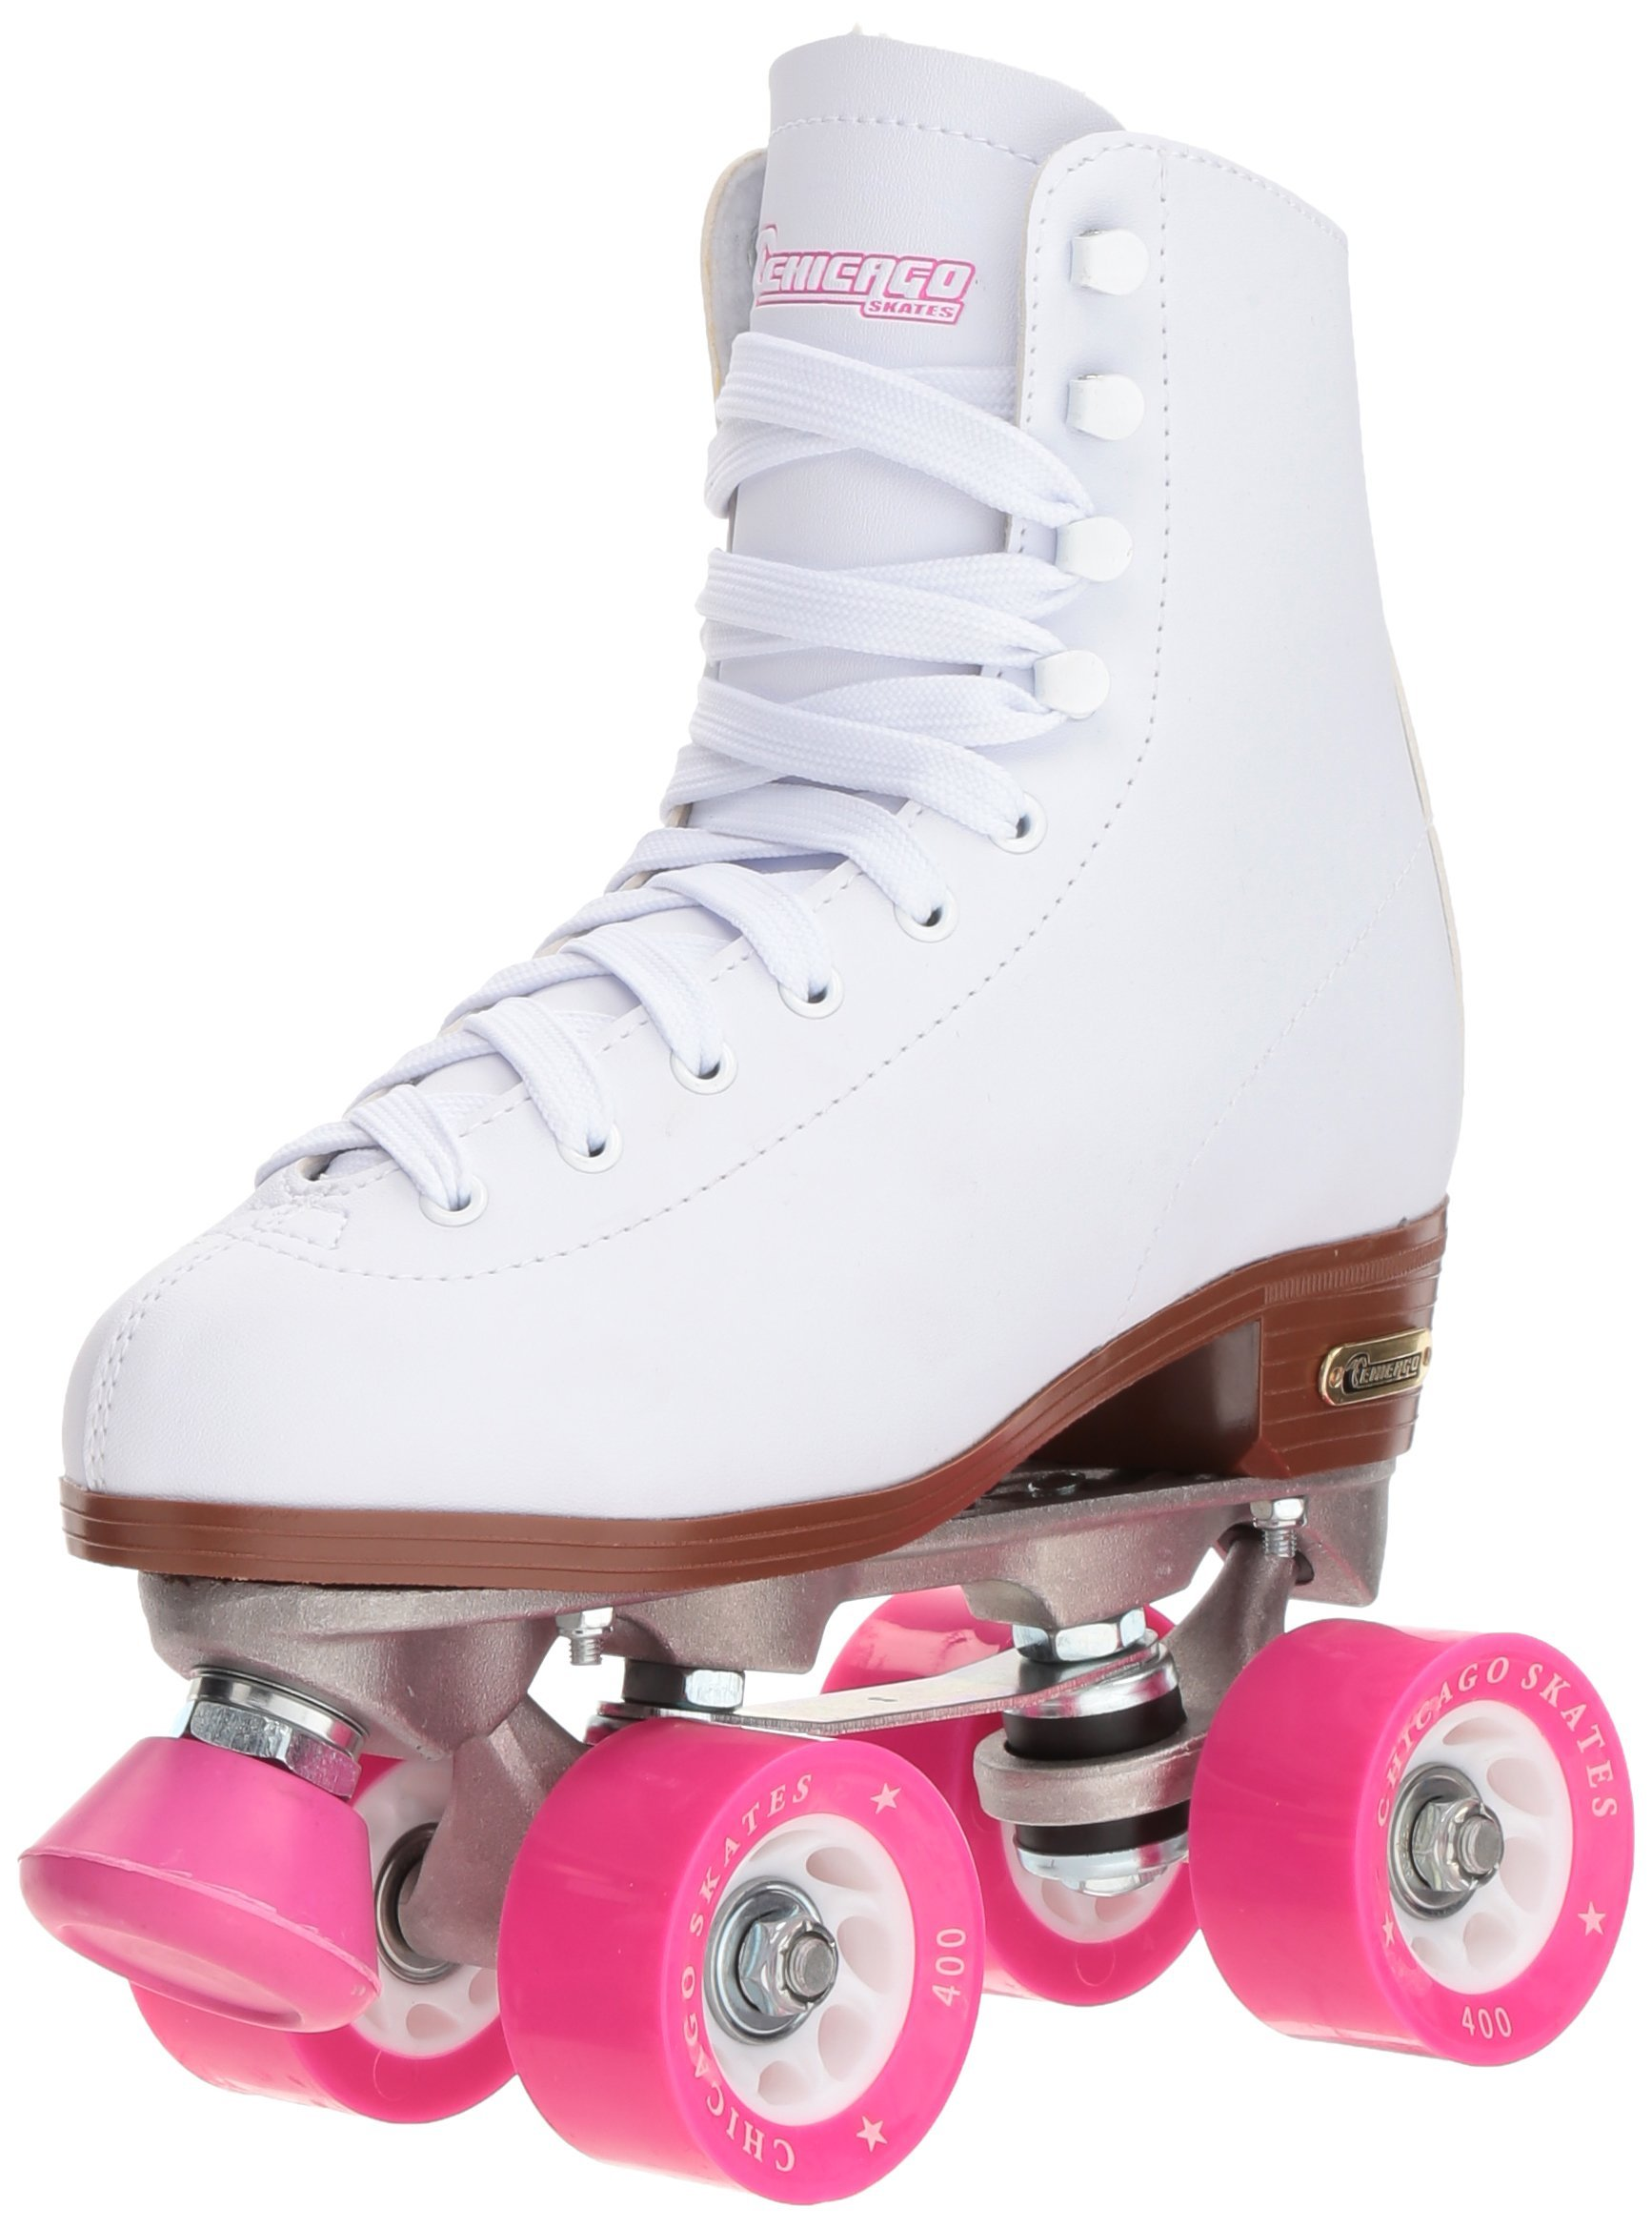 Chicago Women's Classic Roller Skates - White Rink Skates - Size 10 (Renewed)